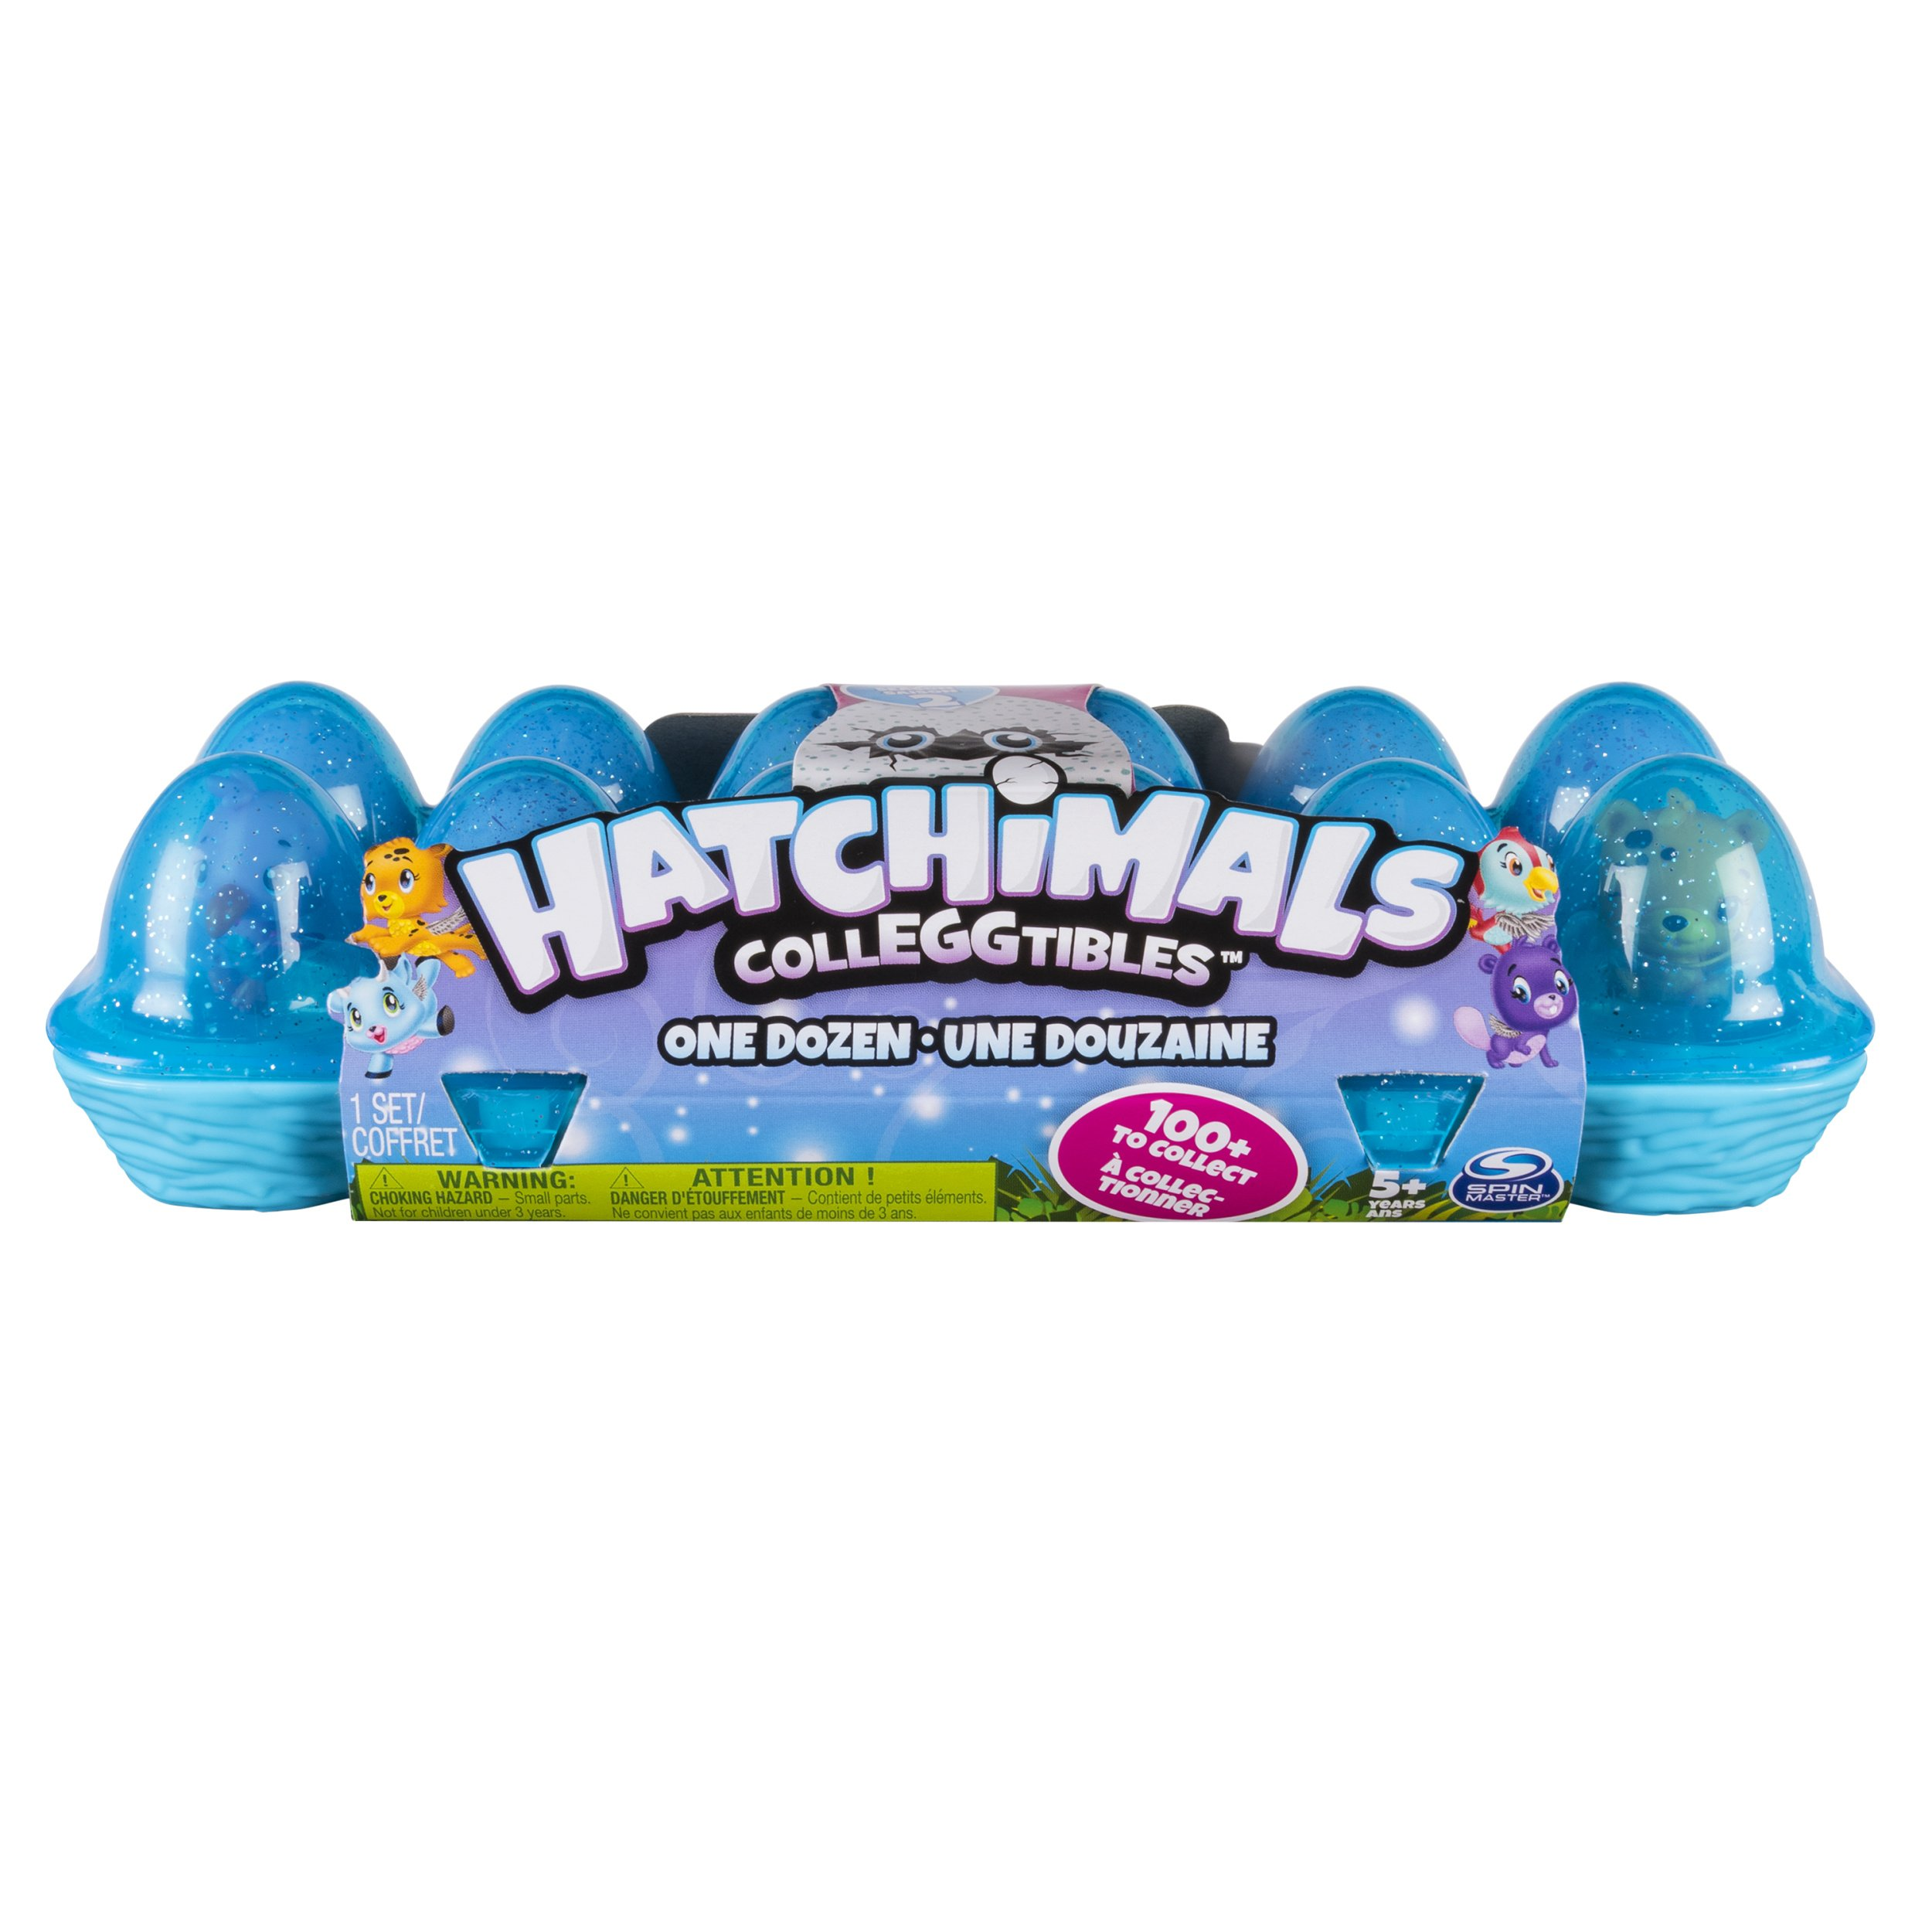 Hatchimals CollEGGtibles Season 2 - 12-Pack Egg Carton by Spin Master by Hatchimals (Image #2)